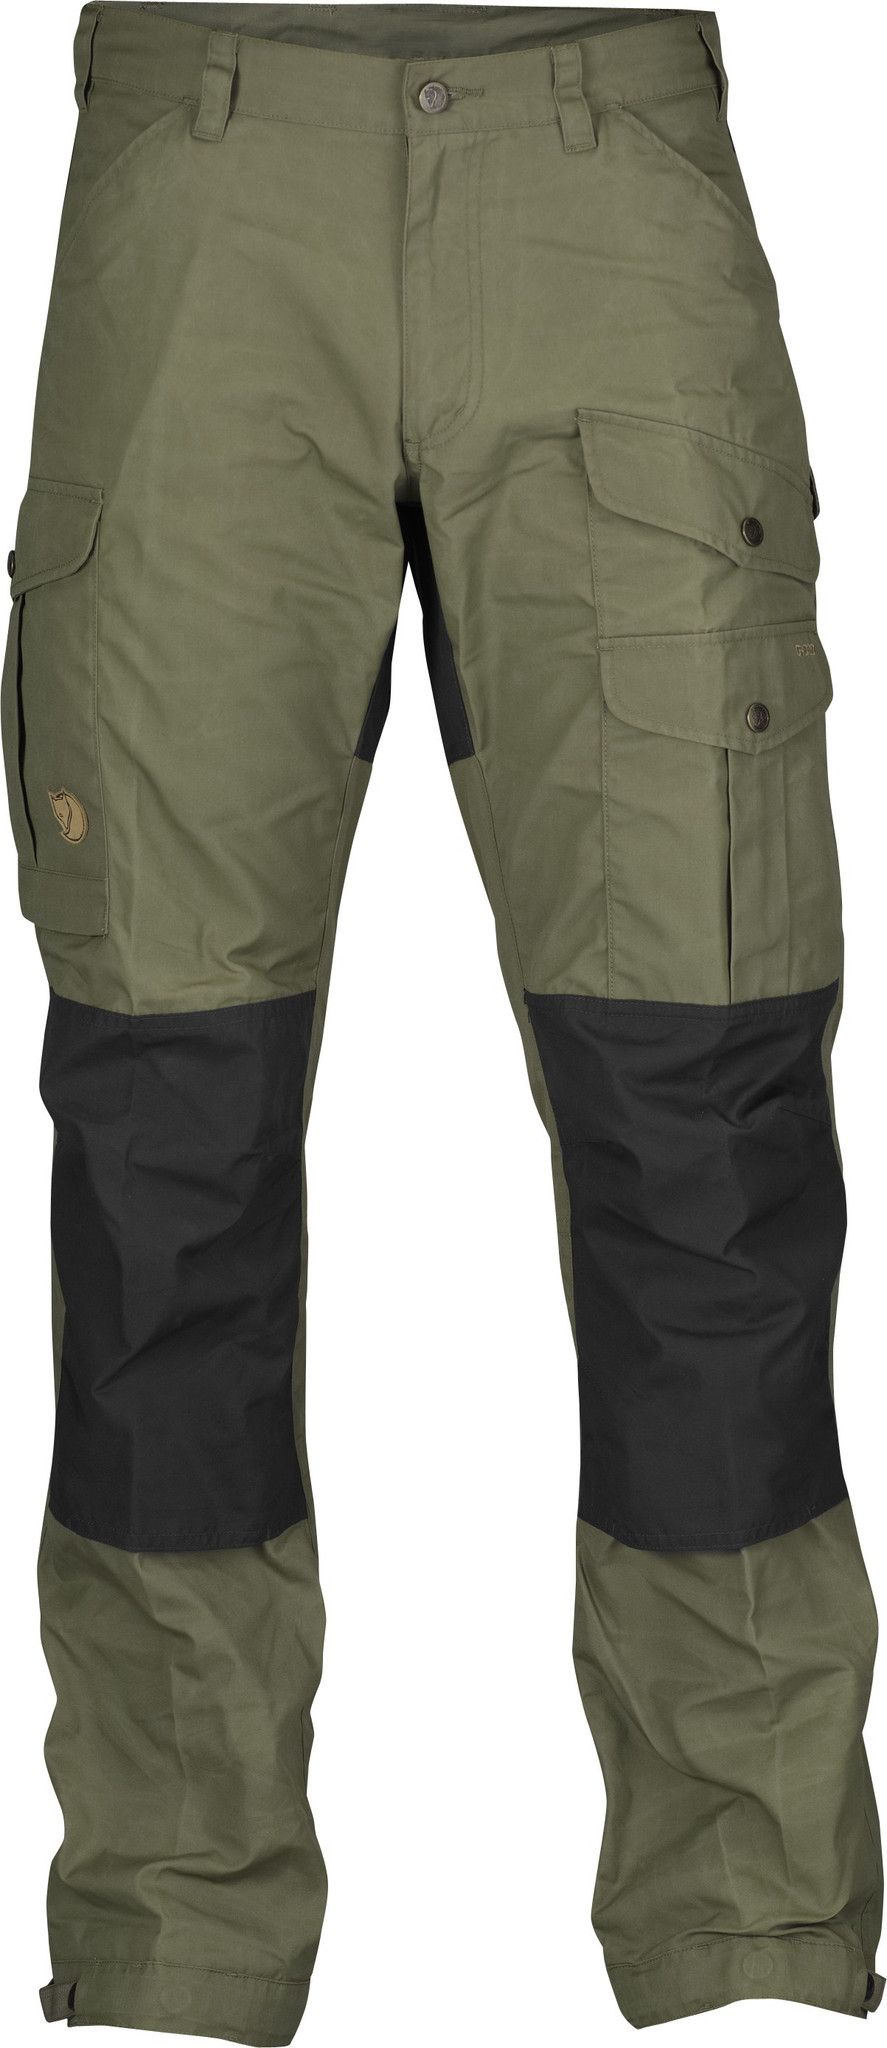 Vidda Pro Trousers Regular Trekking Trousers Hiking Pants Best Hiking Pants Trekking Outfit Women